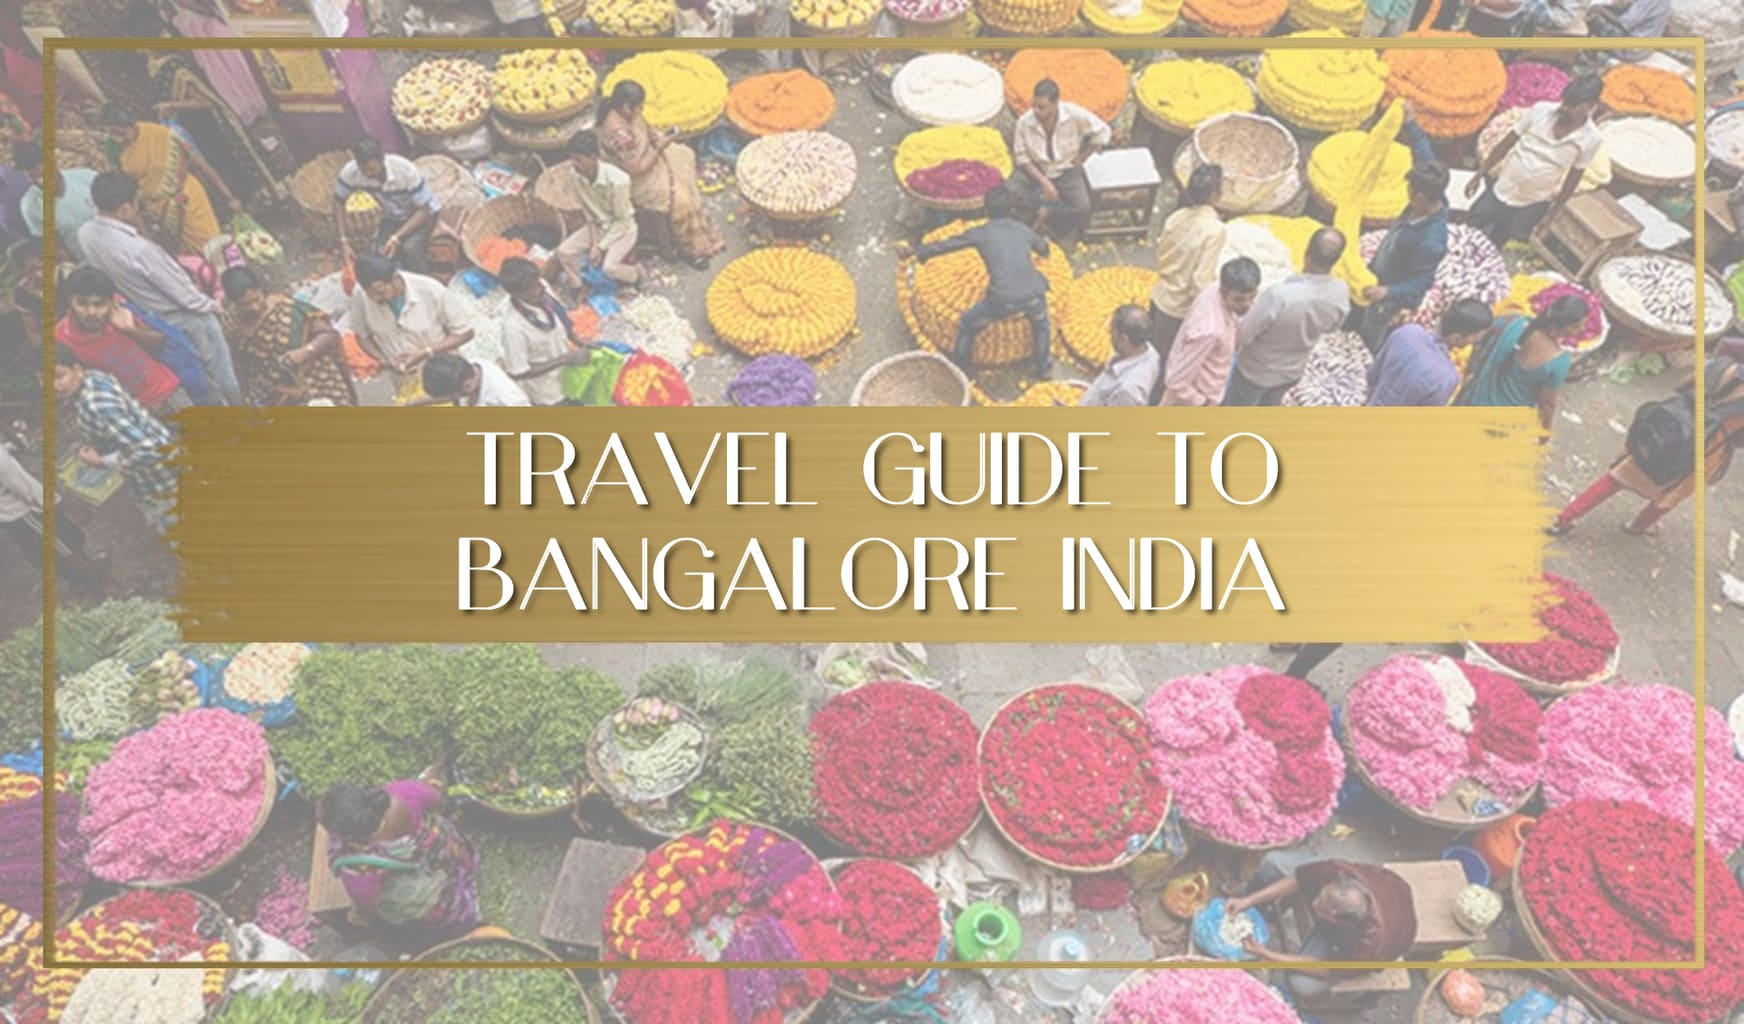 Places to visit in Bangalore main